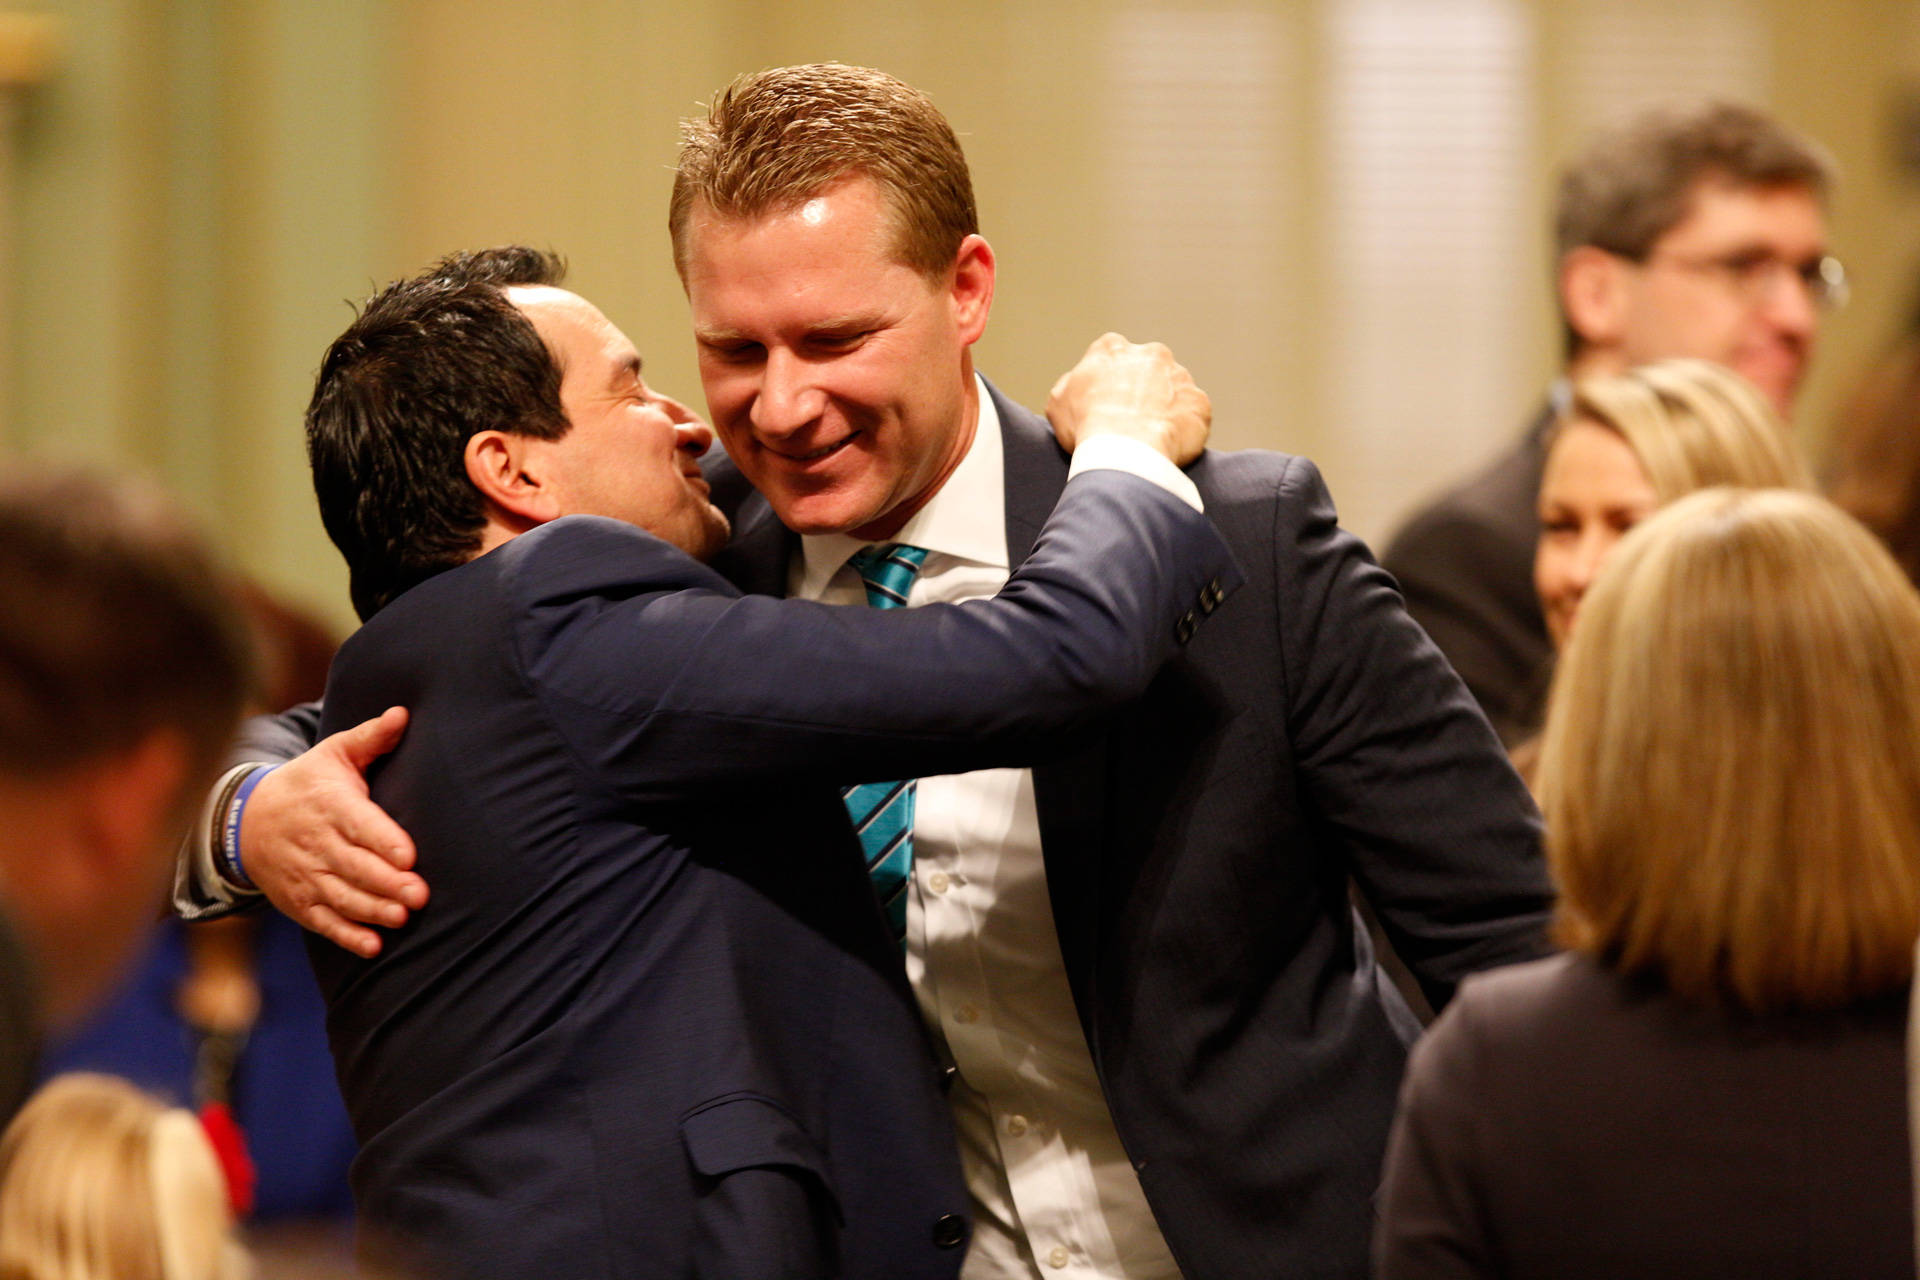 Democratic Assembly Speaker Anthony Rendon (L) embraces former Assembly GOP leader Chad Mayes in December, 2016. Steve Yeater/CALmatters